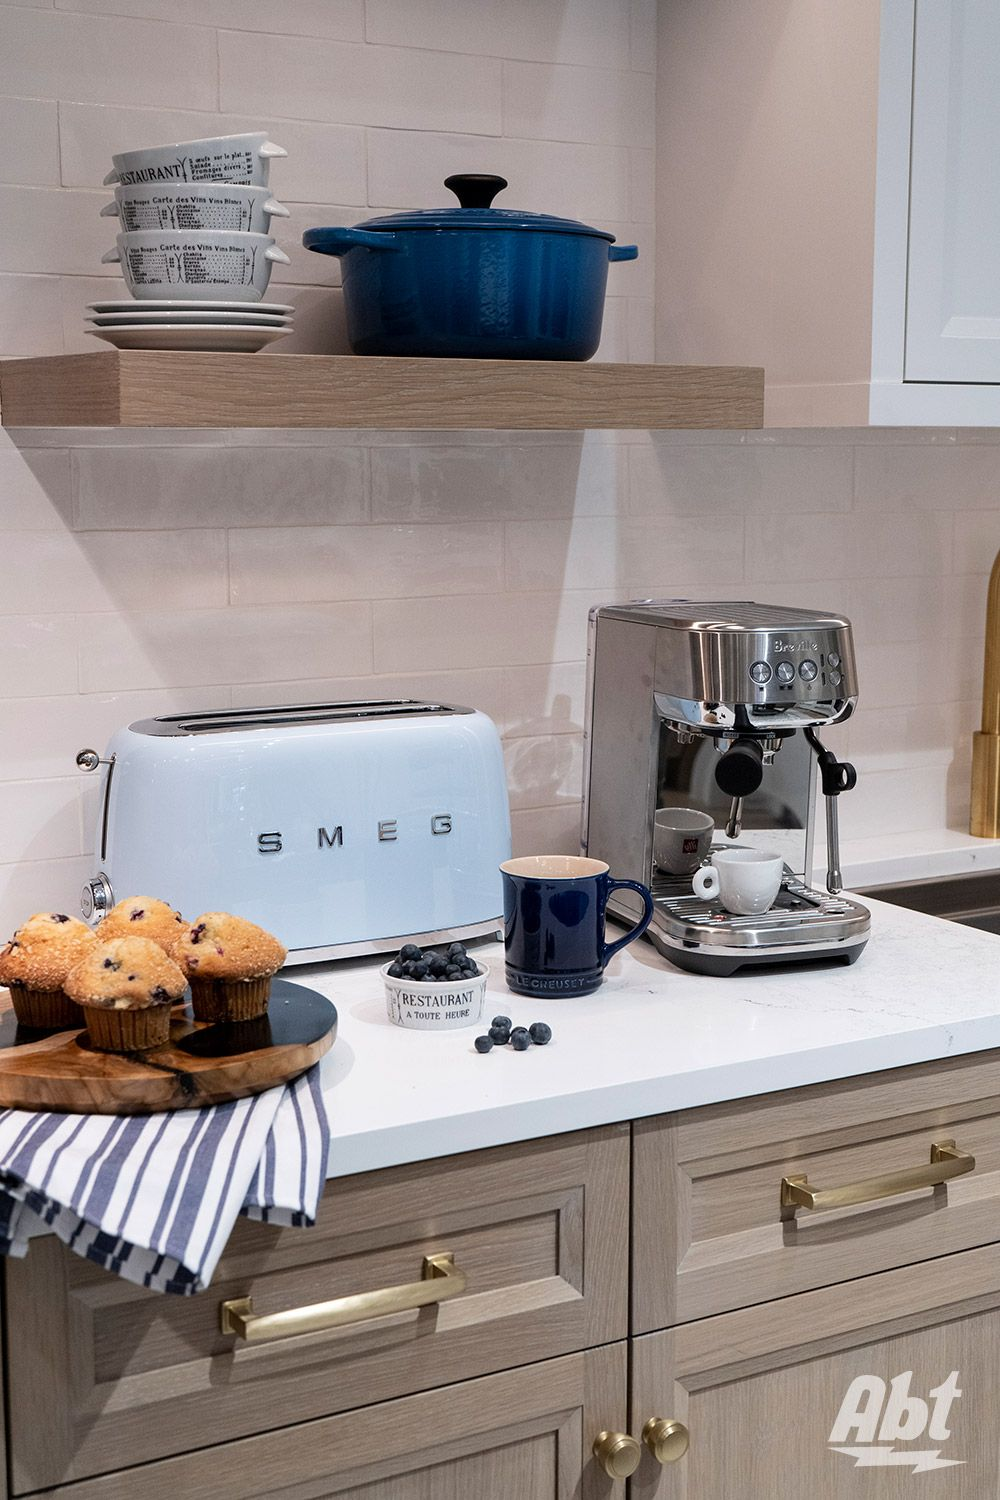 Pin on Small Appliances